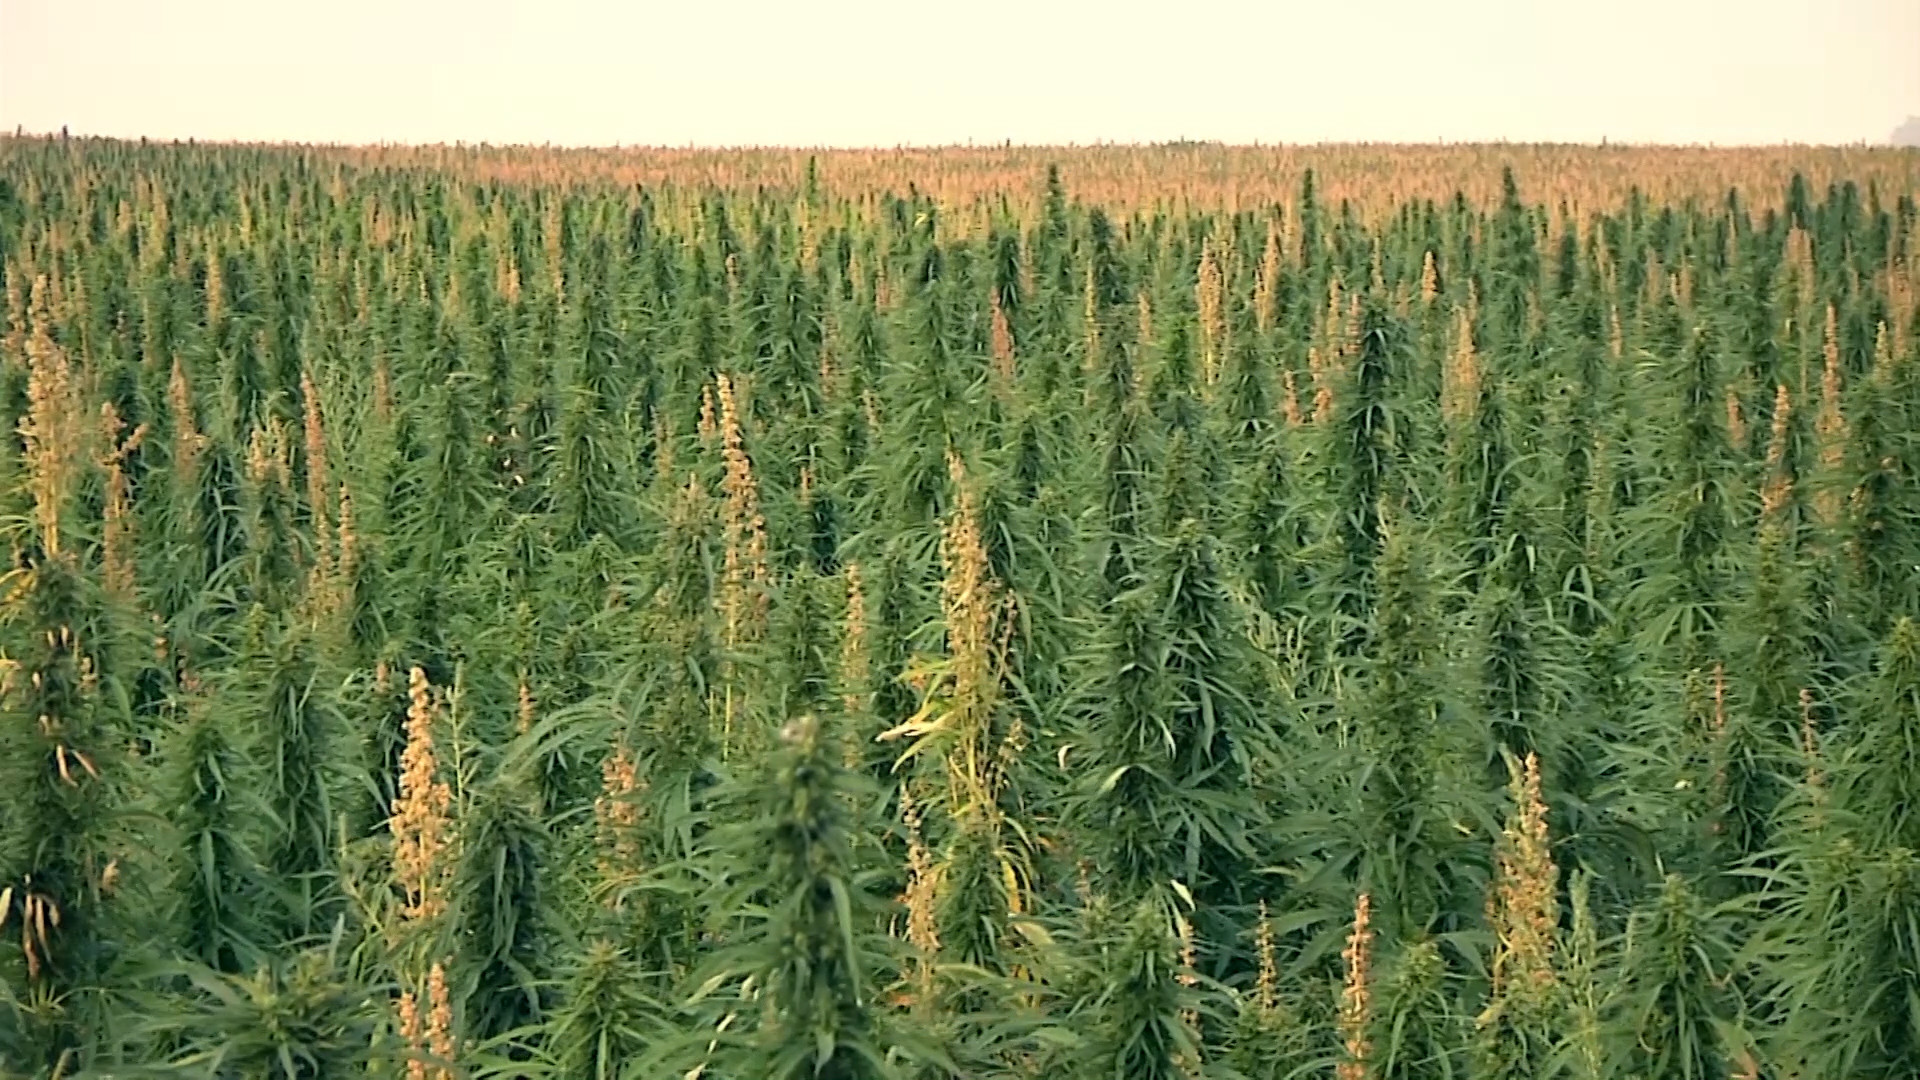 USDA Announces Pilot Insurance Coverage for Hemp Growers